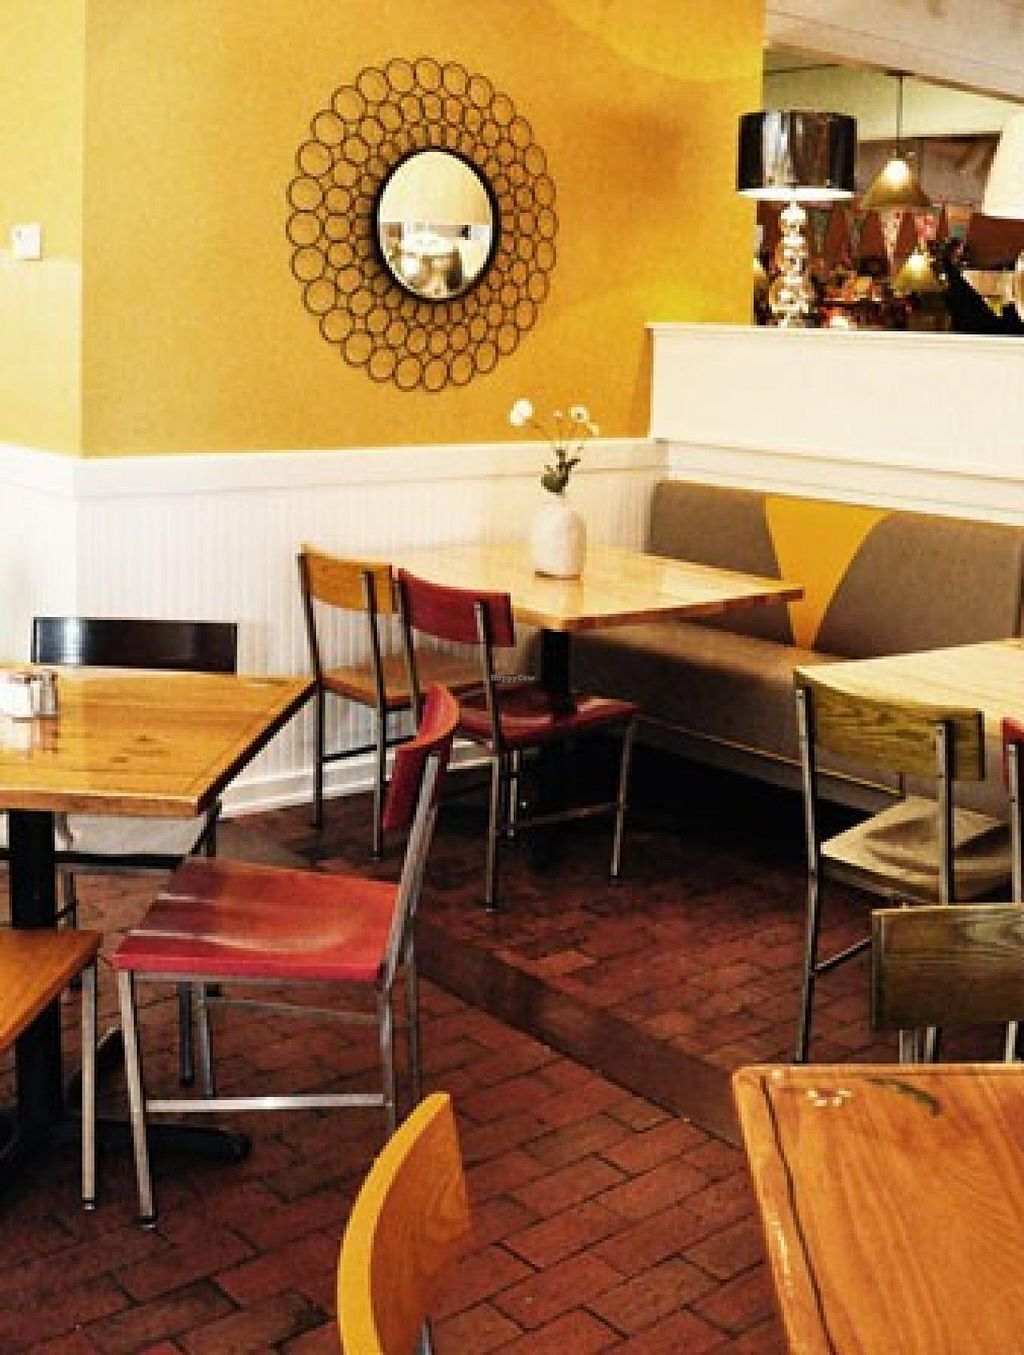 """Photo of Zest Cafe  by <a href=""""/members/profile/community"""">community</a> <br/>Zest Cafe <br/> July 16, 2014  - <a href='/contact/abuse/image/4345/74174'>Report</a>"""